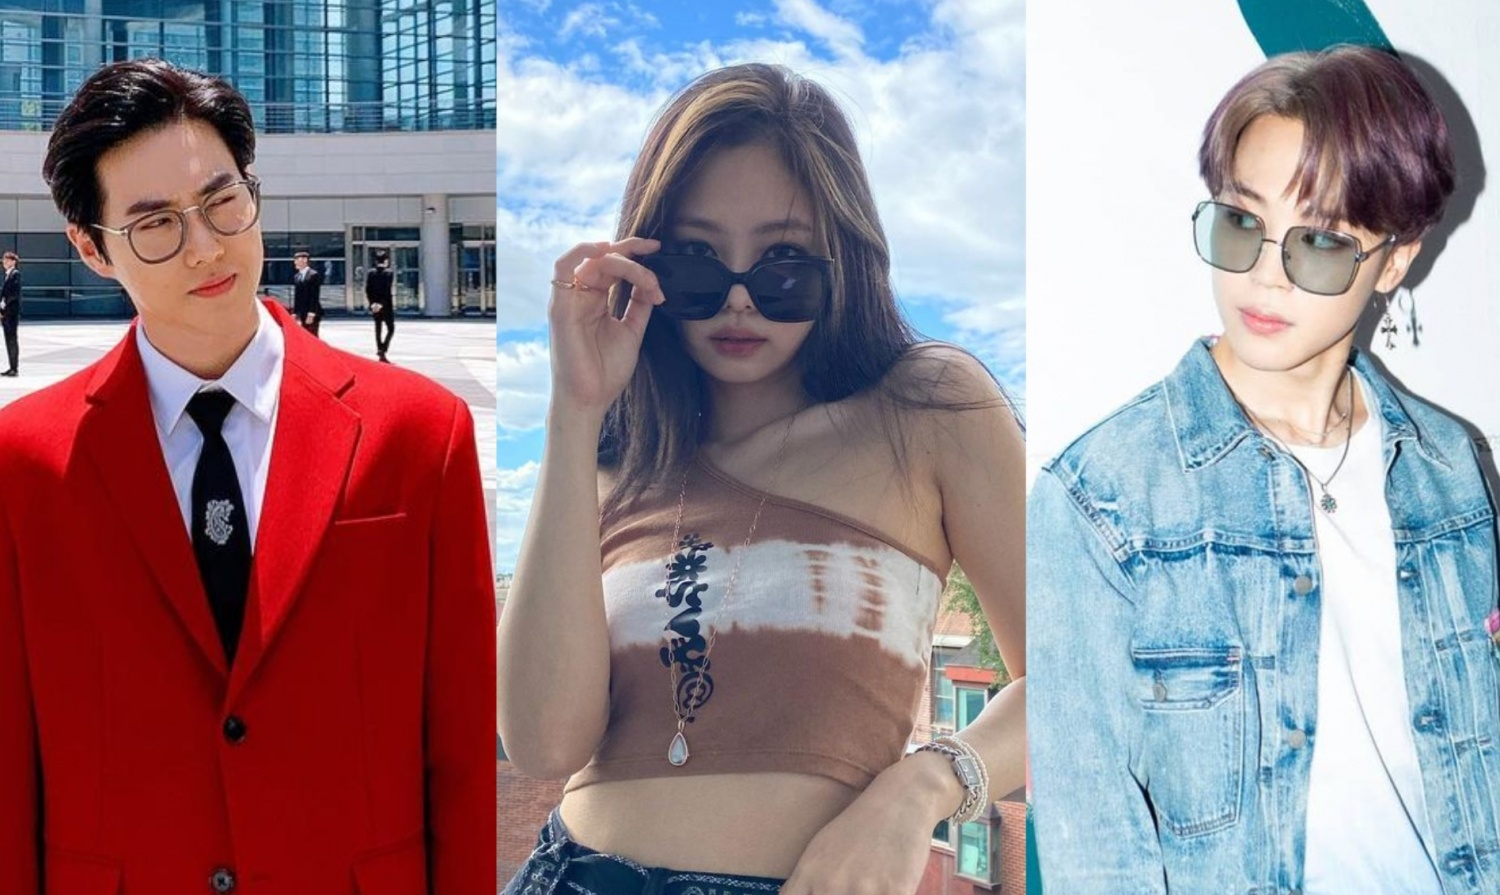 IDOLCHAMP Releases 'Best 9 Idols Who Look Best in Sunglasses' Rankings